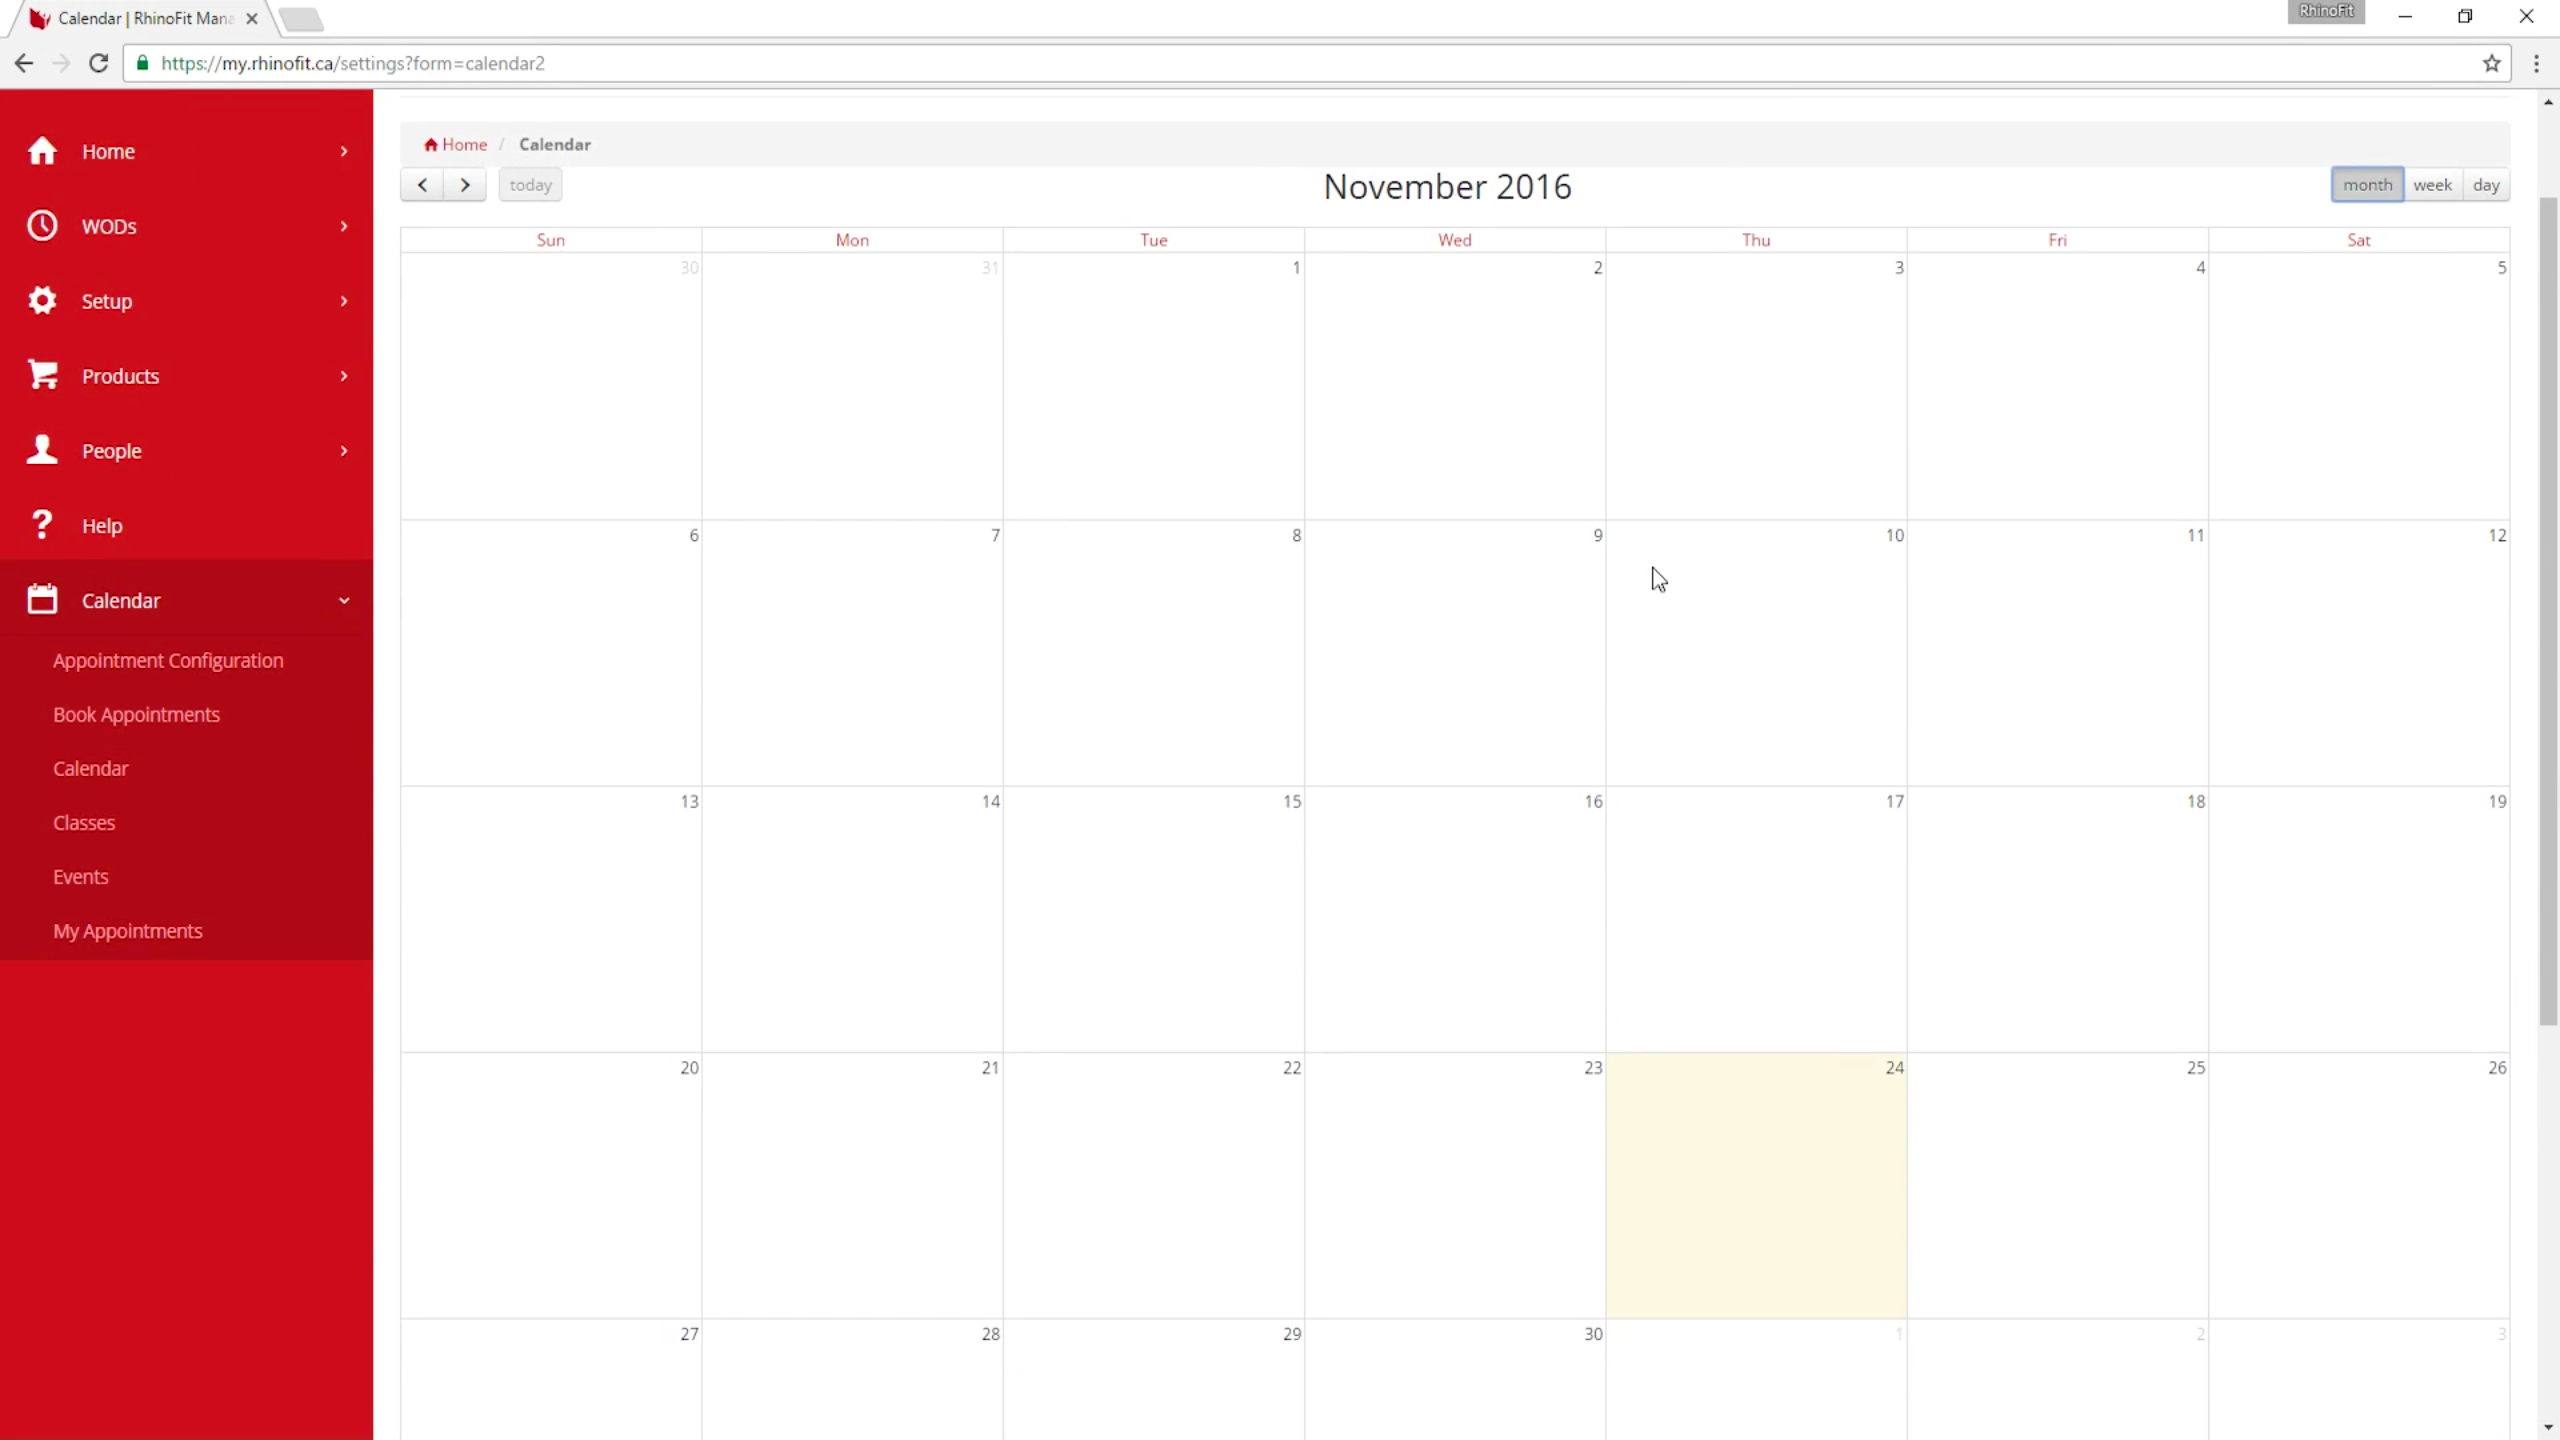 Switch between month, week and day calendar views to see immediately where and when classes are being held